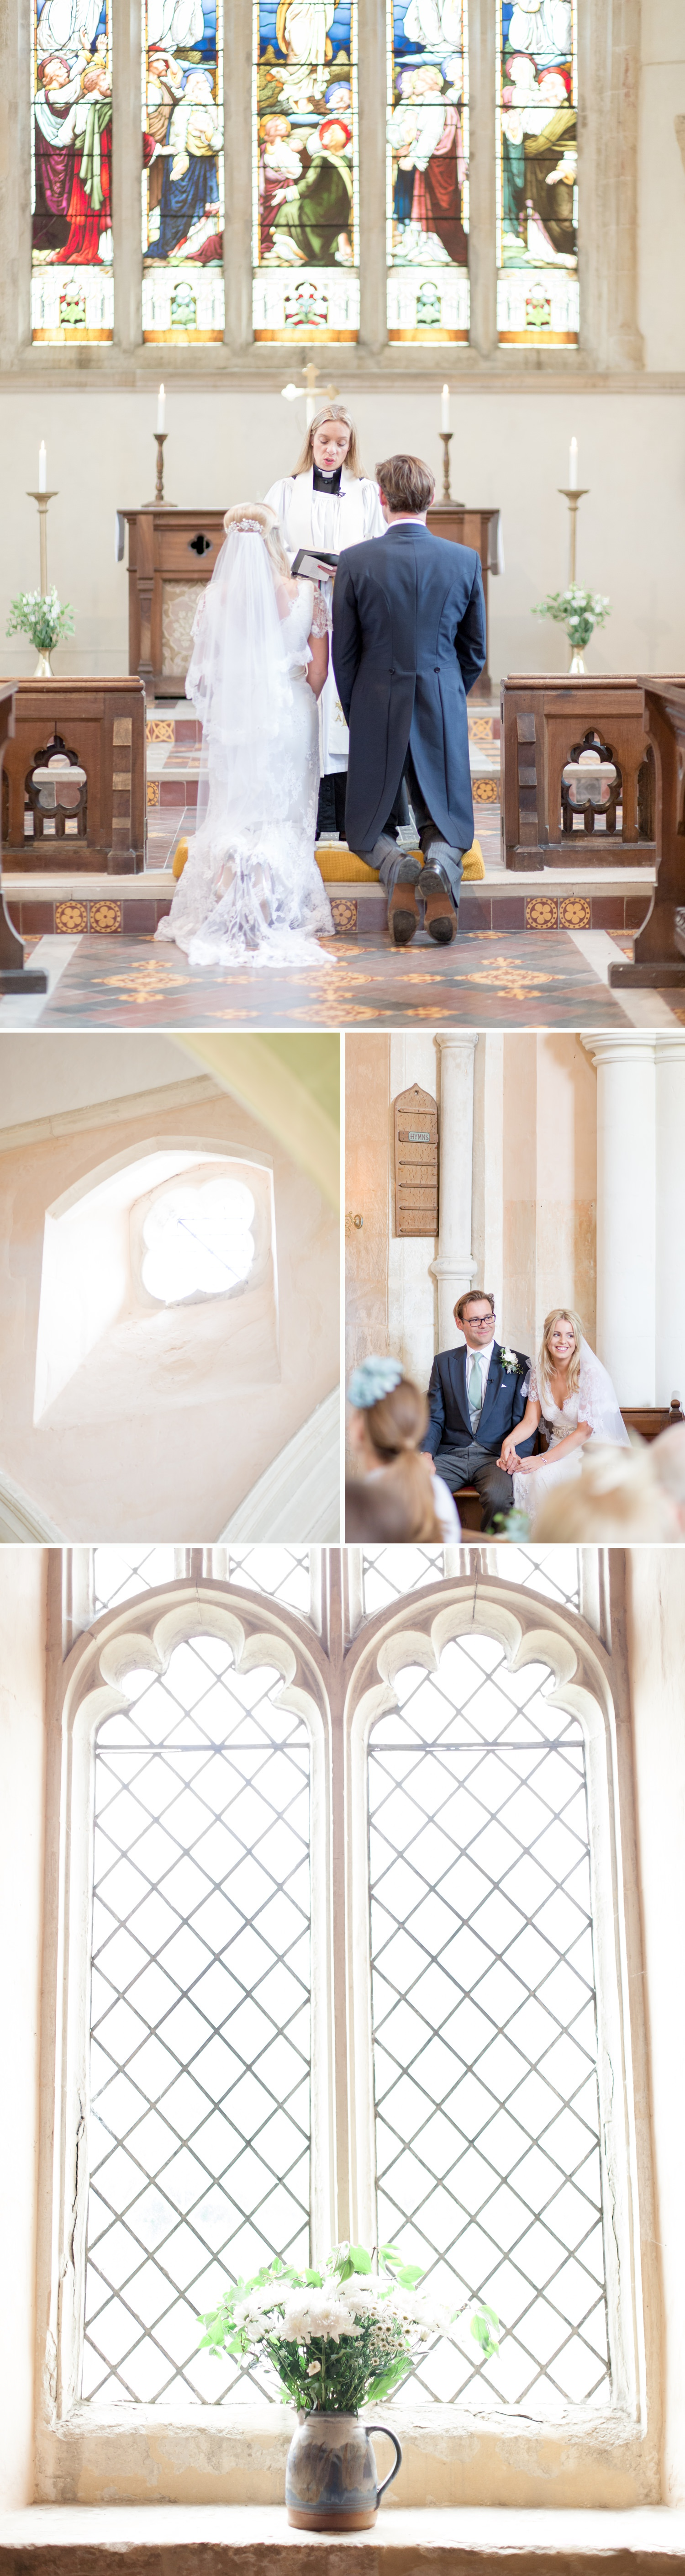 Emily & Jonathan's Cambridgeshire wedding - couple being blessed in a marriage ceremony